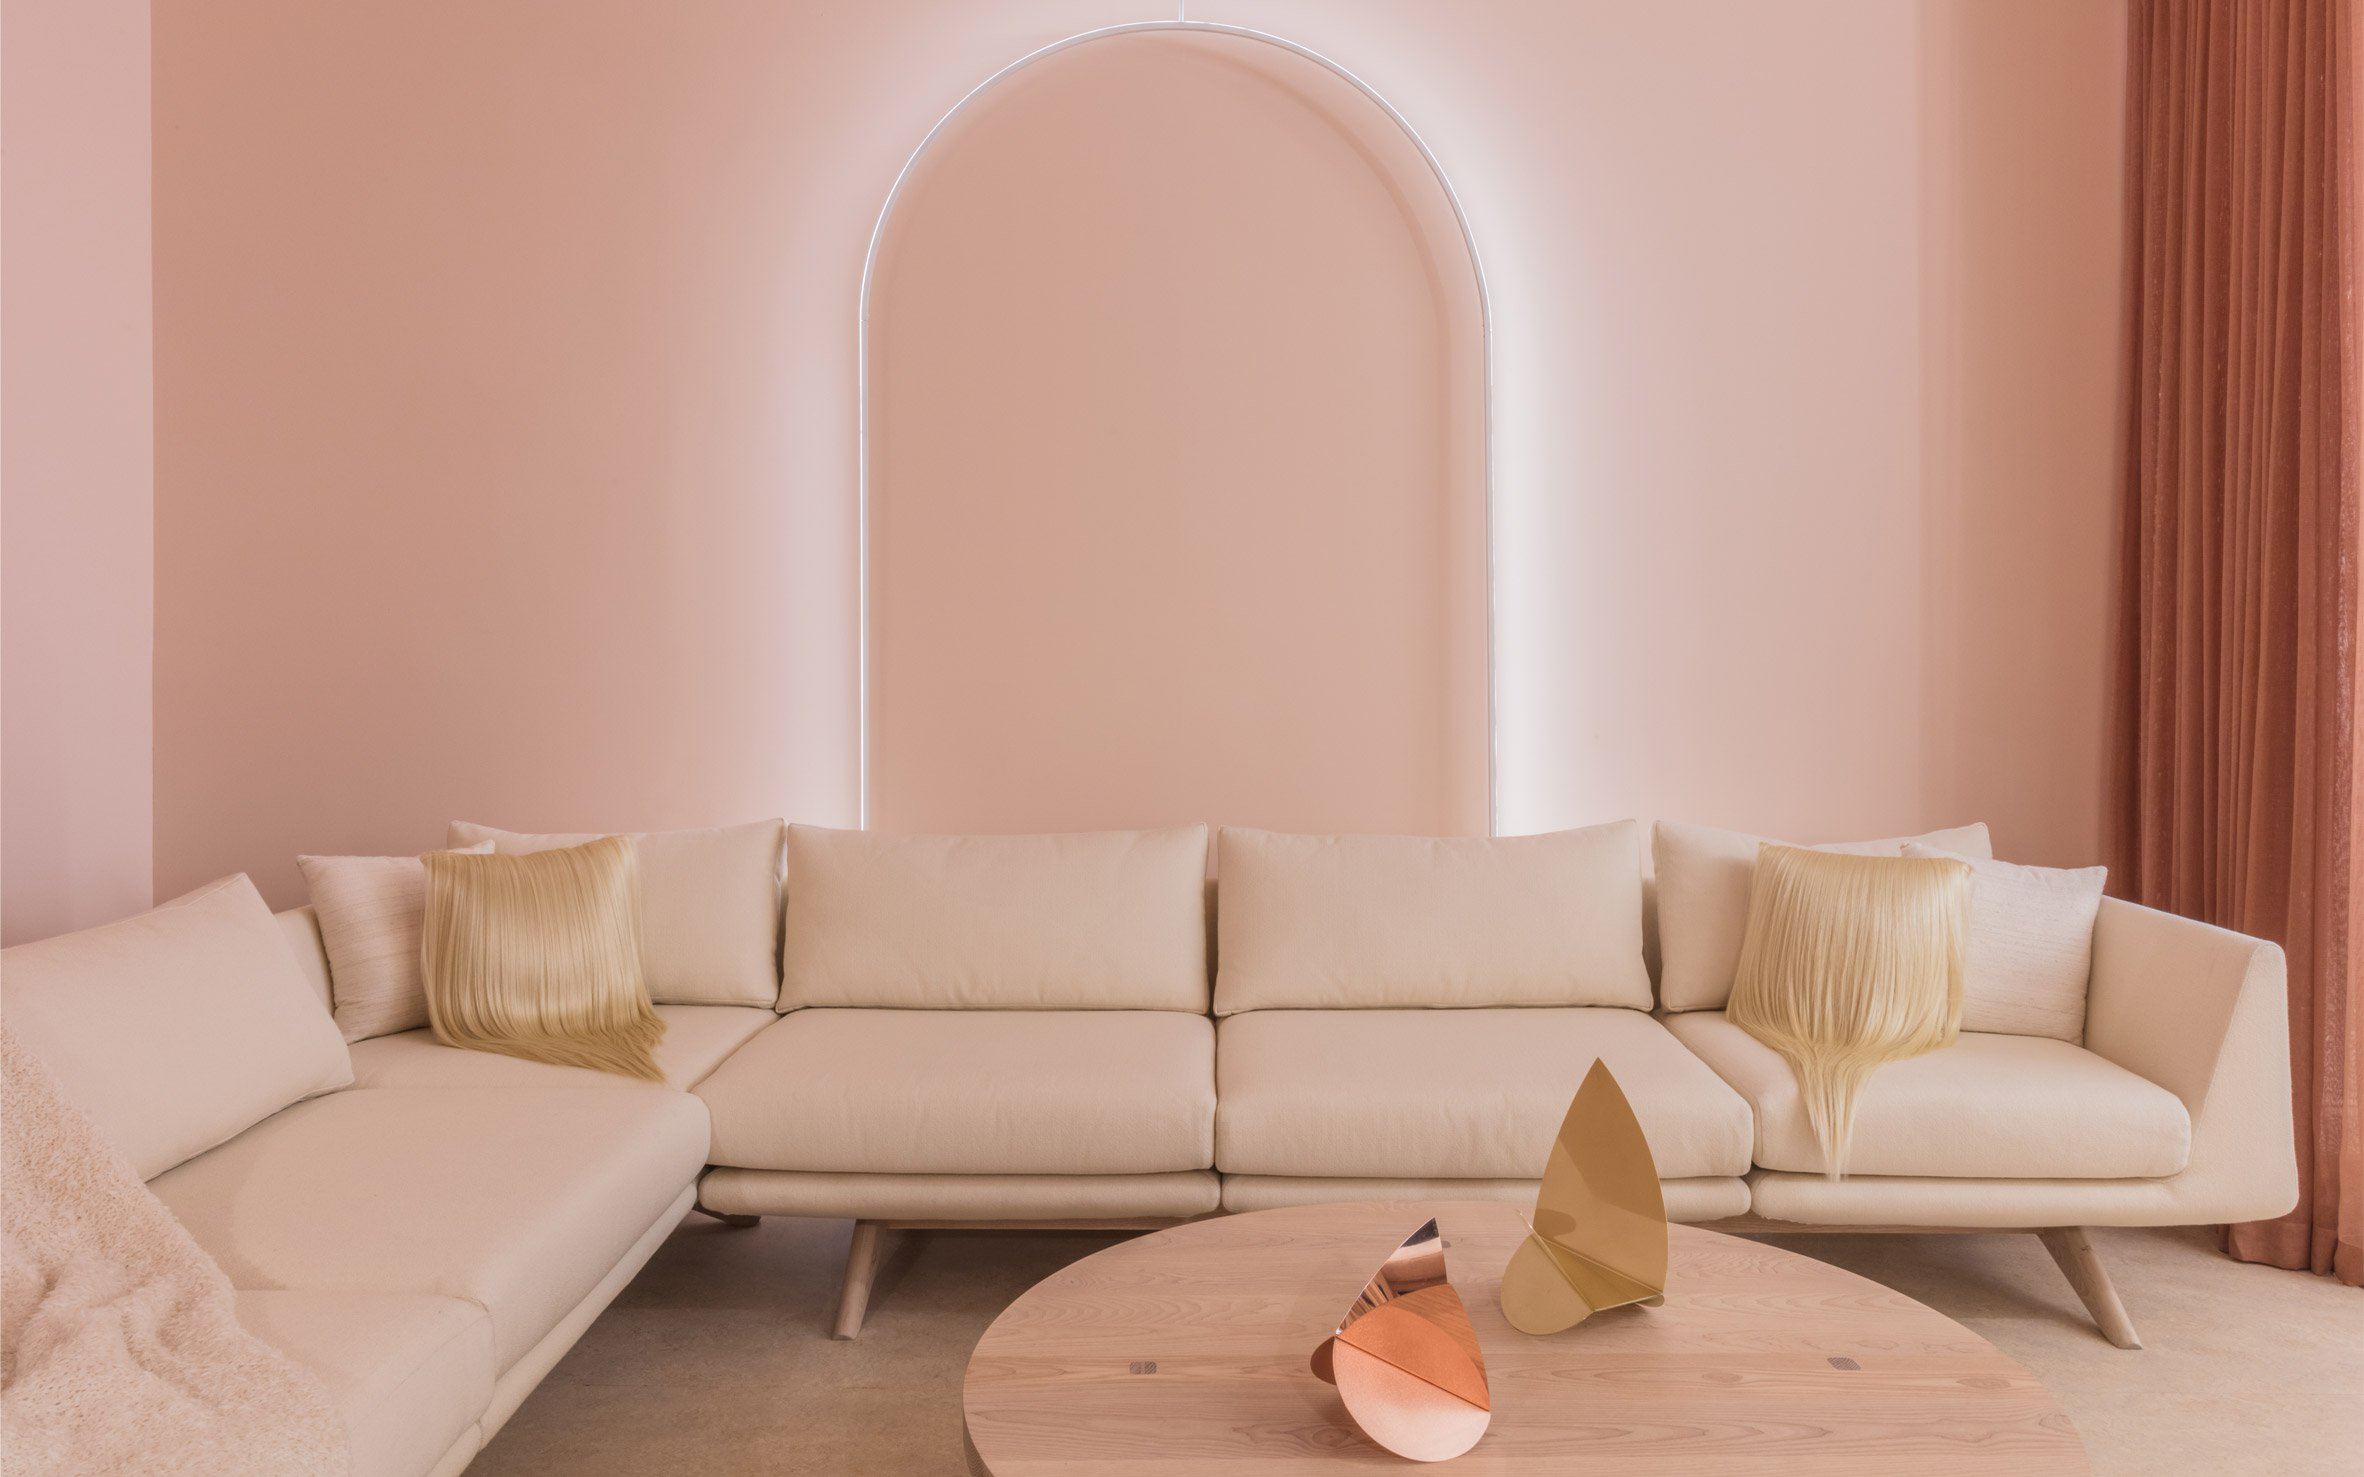 The Outlines Exhibition In NY Showcases Pink Shades